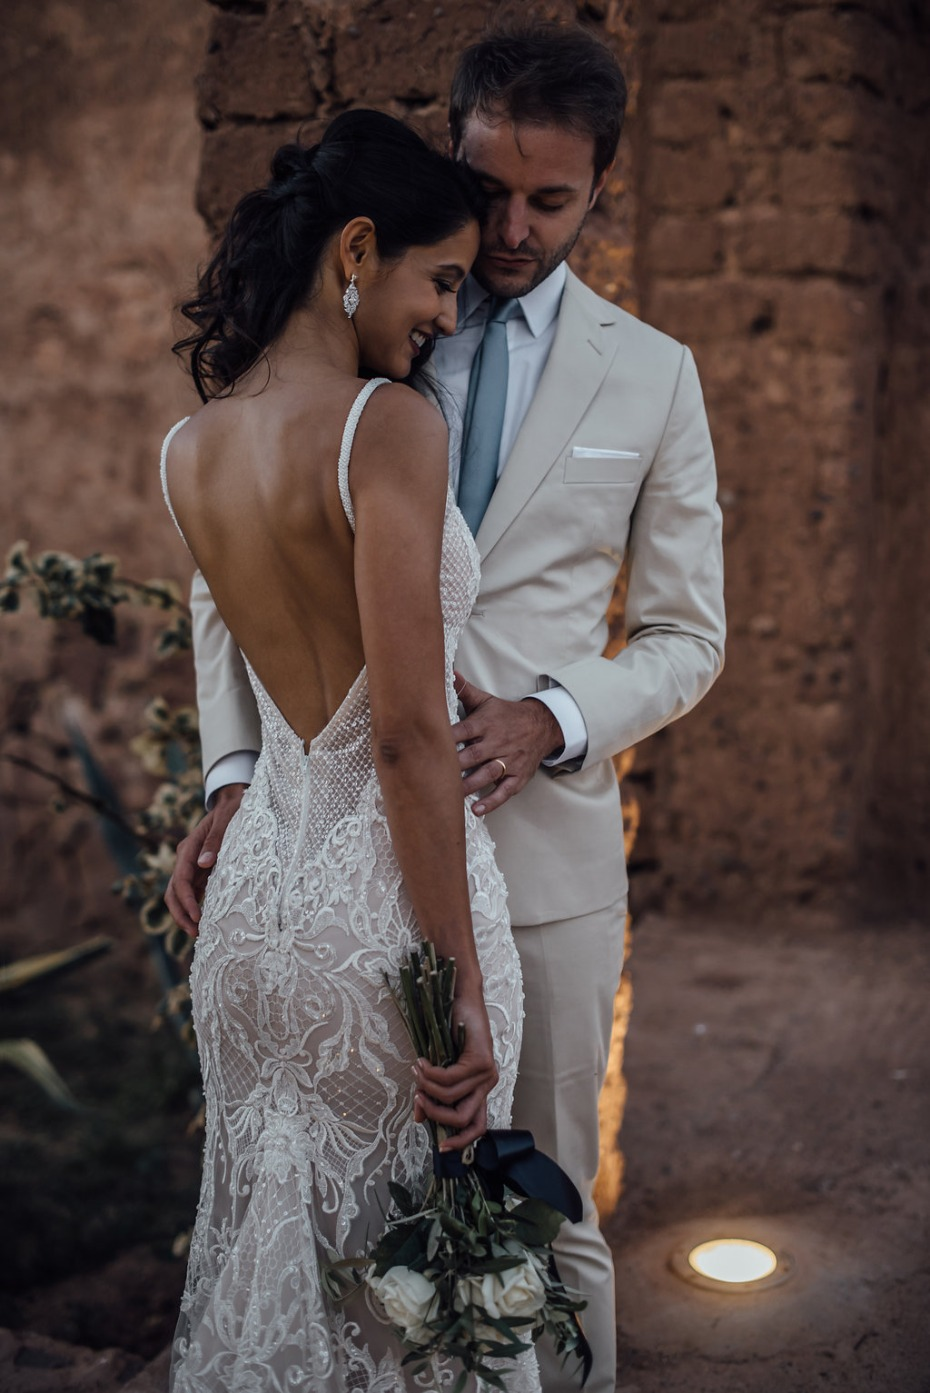 Galia Lahav Is the Gold Behind One of Our Favorite Feeds